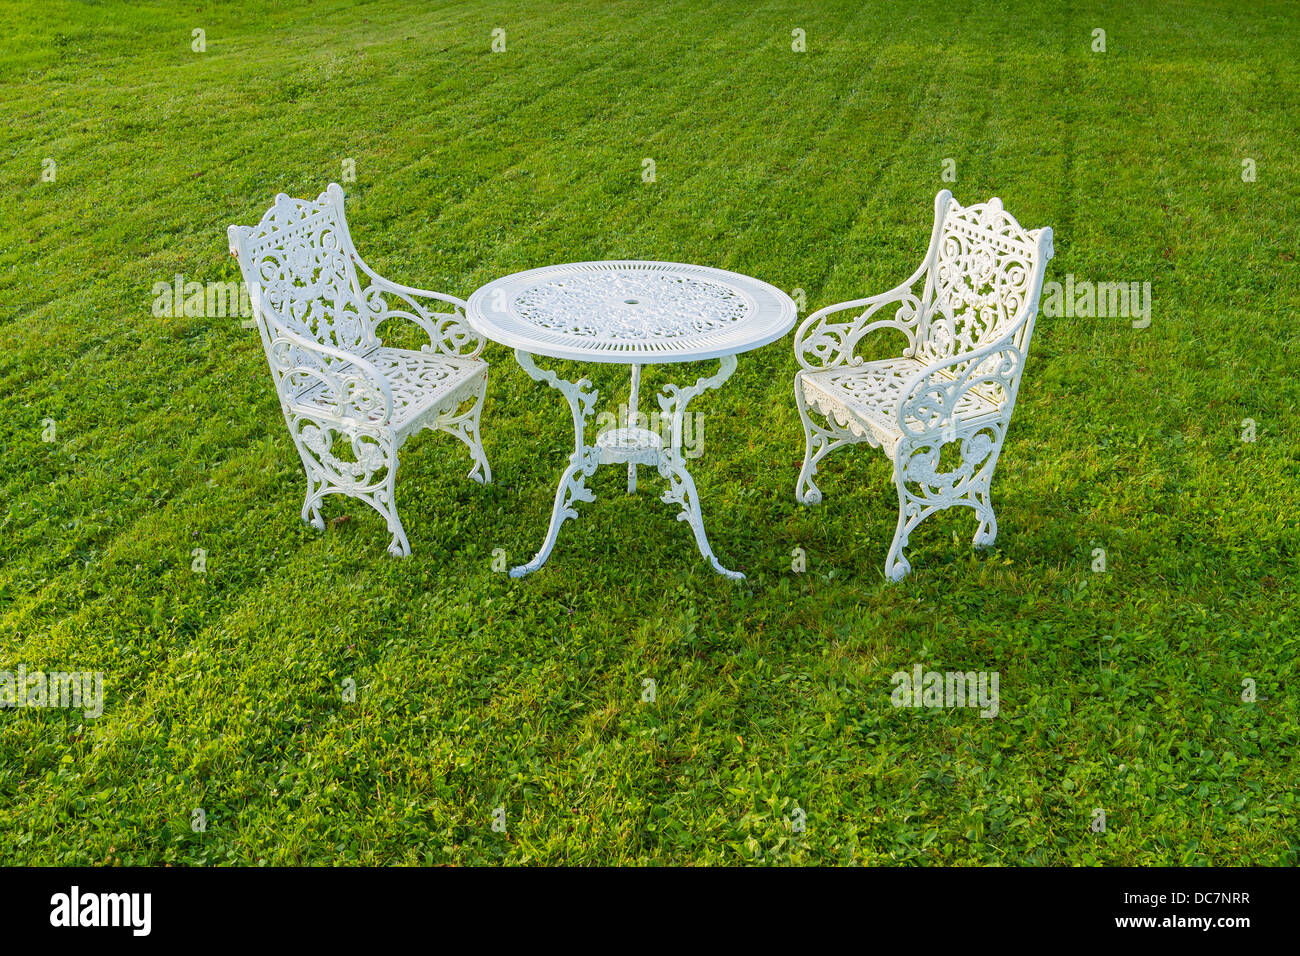 Superb Two White Iron Lawn Chairs White Iron Table On Manicured Caraccident5 Cool Chair Designs And Ideas Caraccident5Info